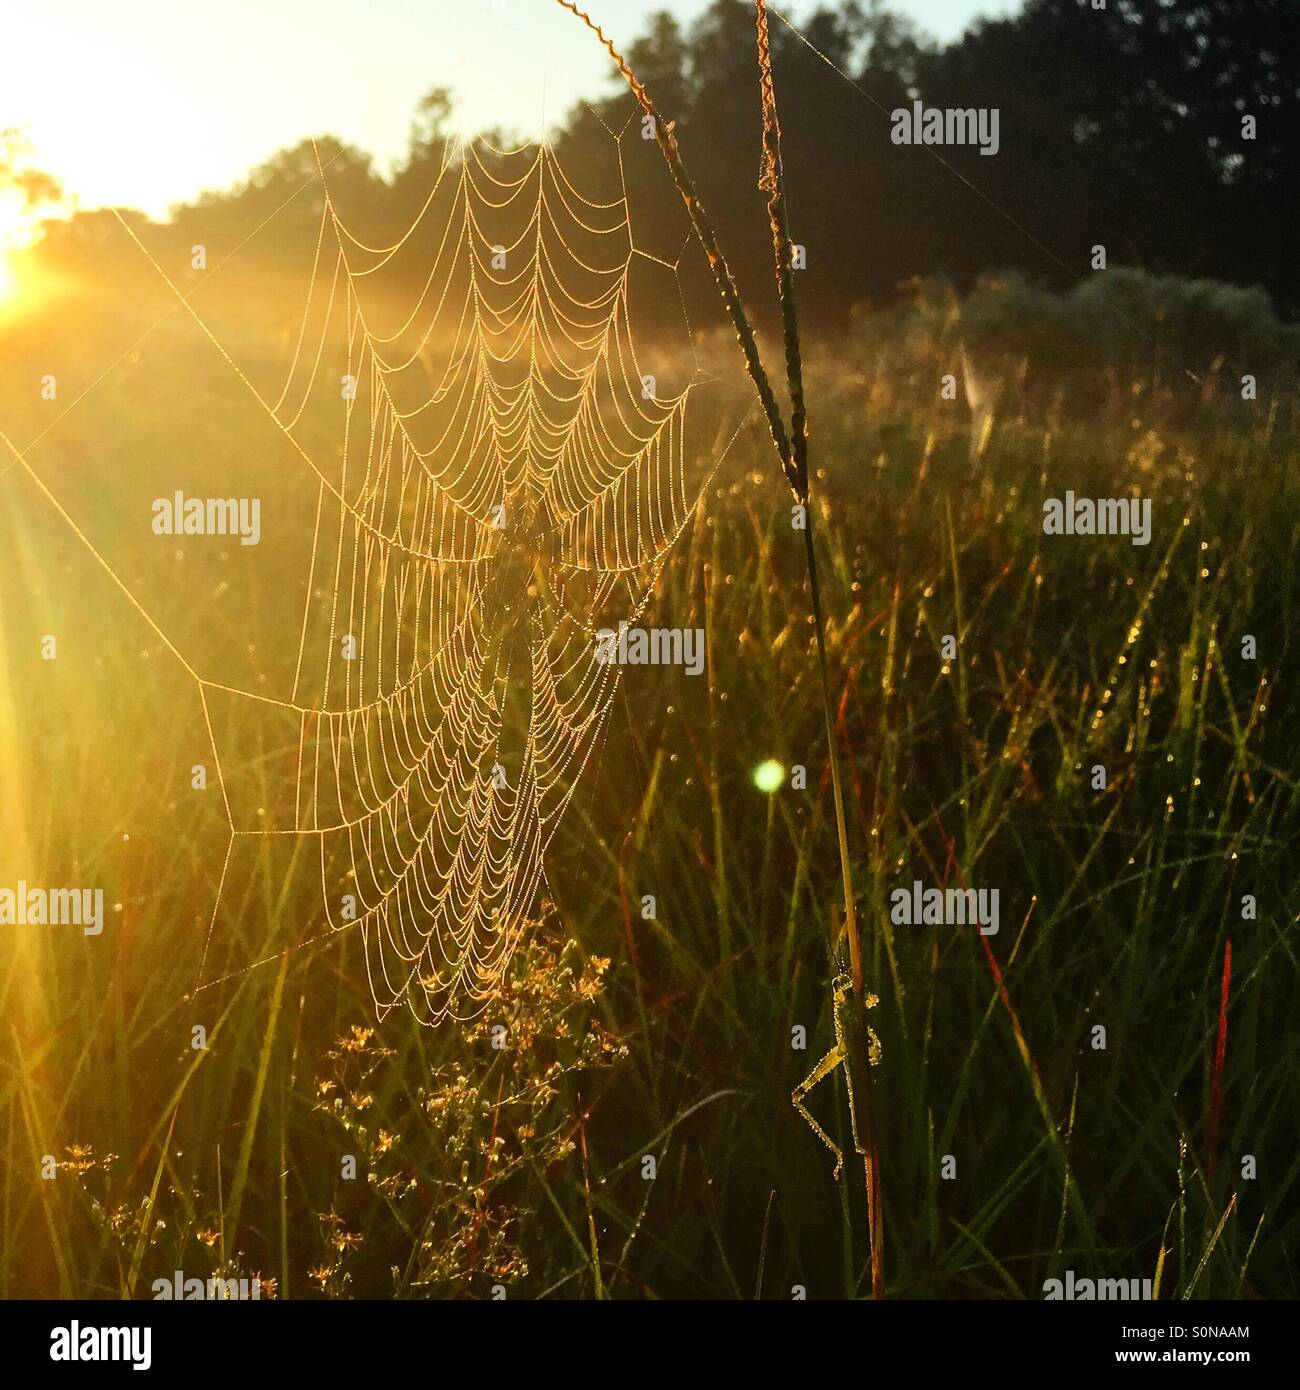 Early morning sun shining on a dew covered spiderweb. - Stock Image